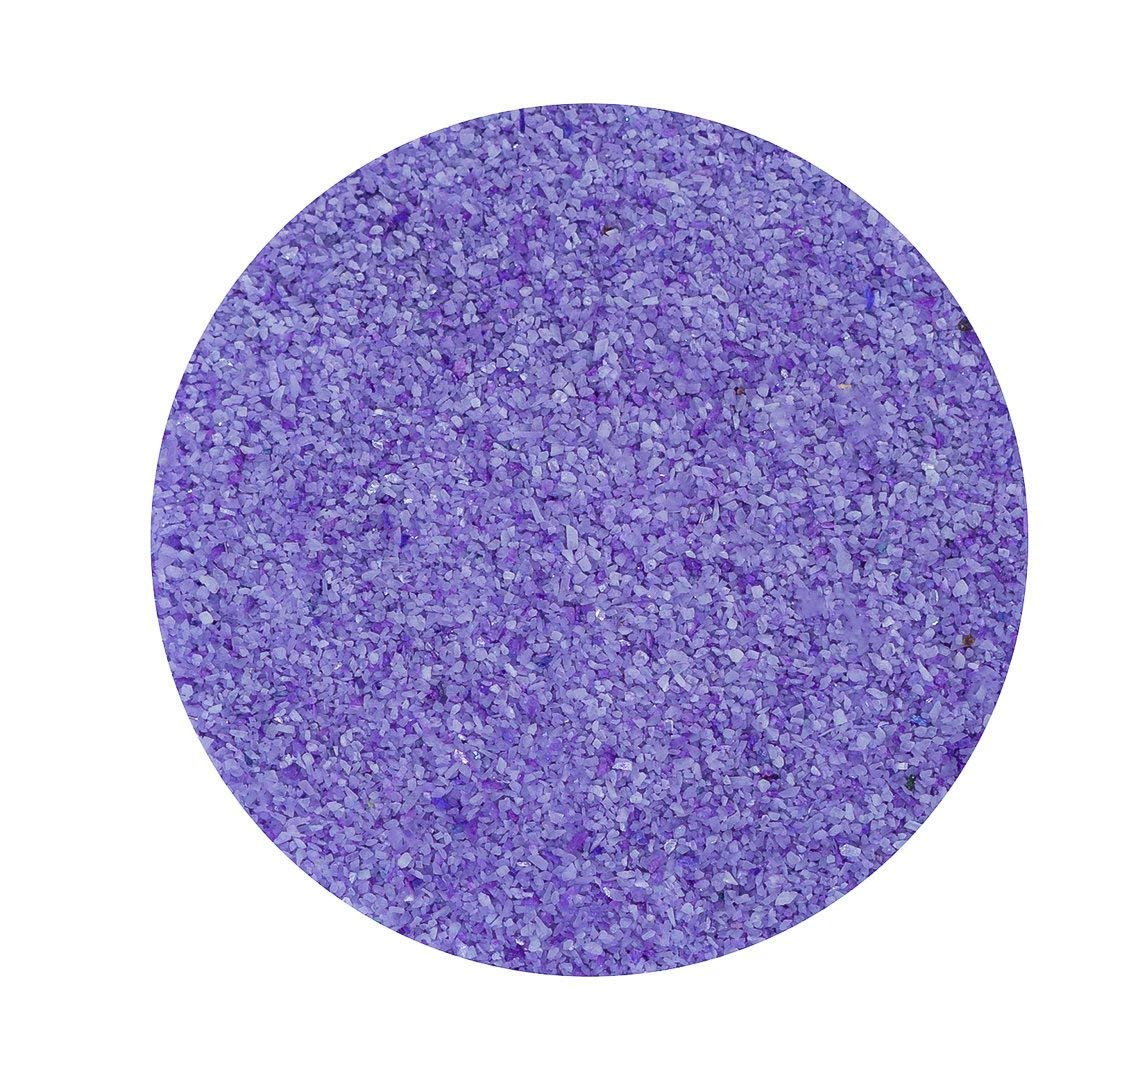 Colored Sand for Crafts | Lavender Sand | for Wedding Sand Ceremonies, Fairy Gardens, Terrariums, or Any Craft | (2 Pound) | Plus Free Nautical Ebook by Joseph Rains